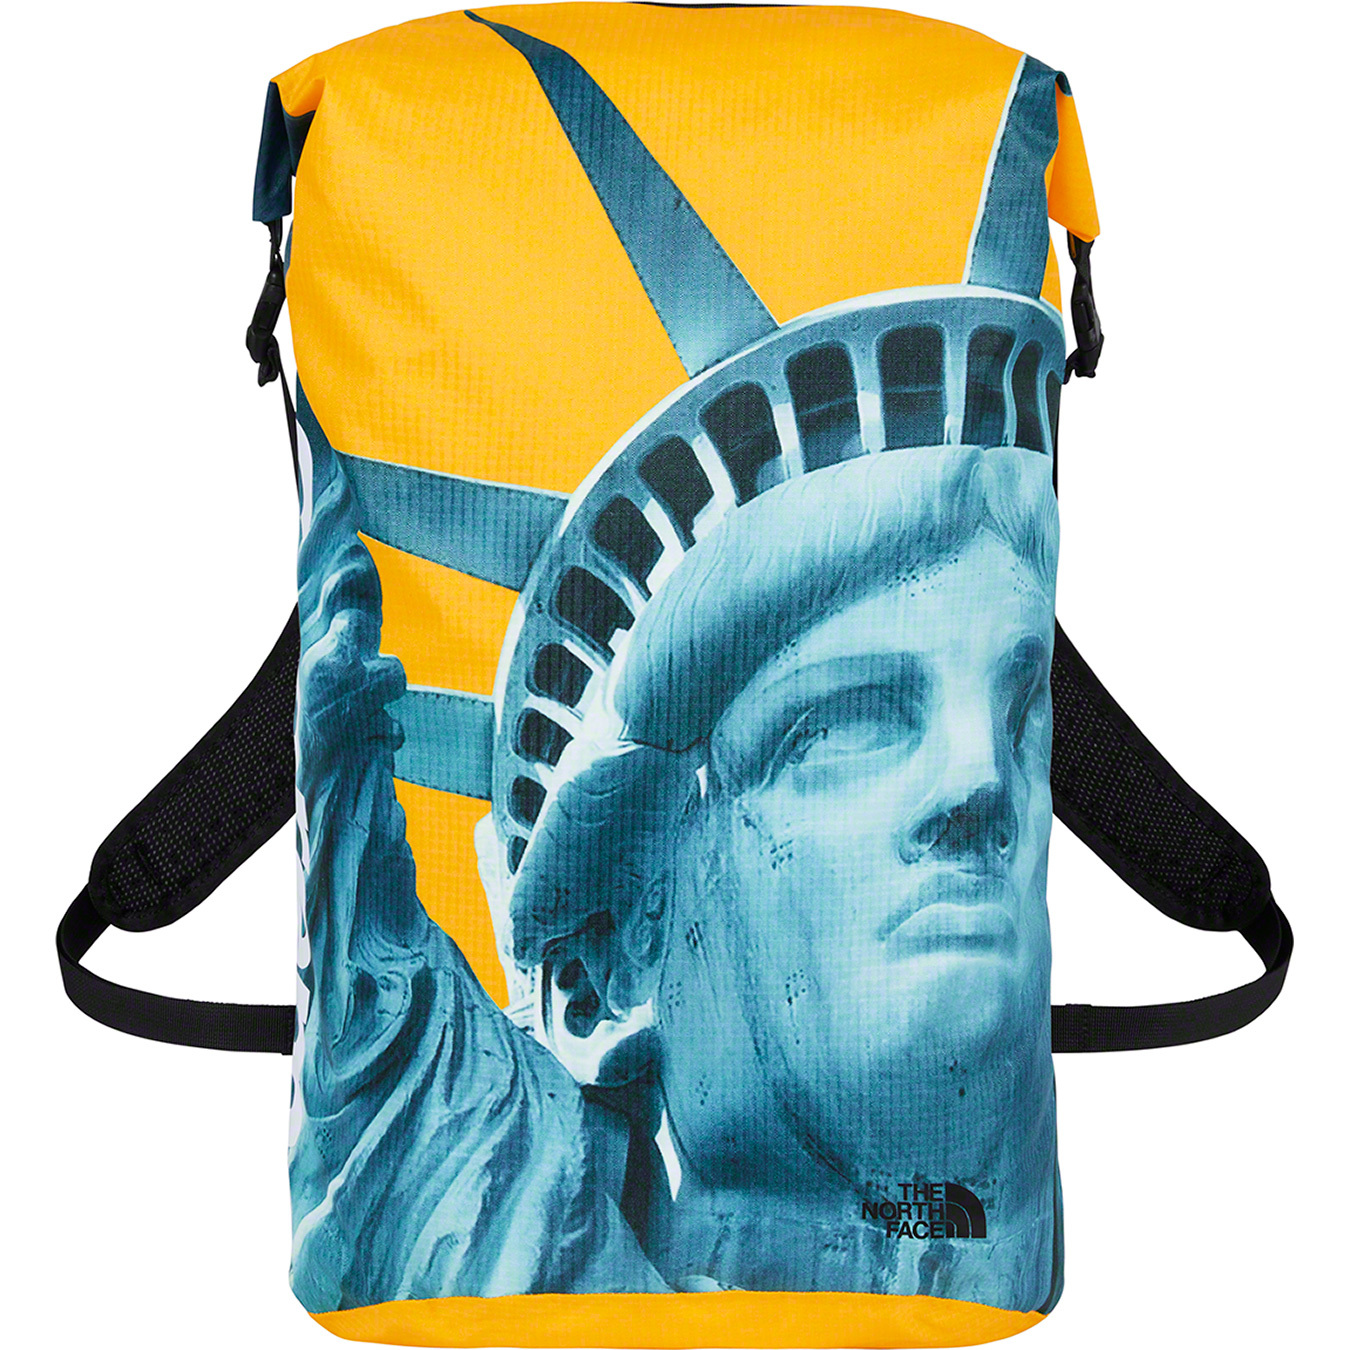 supreme-the-north-face-19aw-19fw-release-20191102-week10-statue-of-liberty-waterproof-backpack